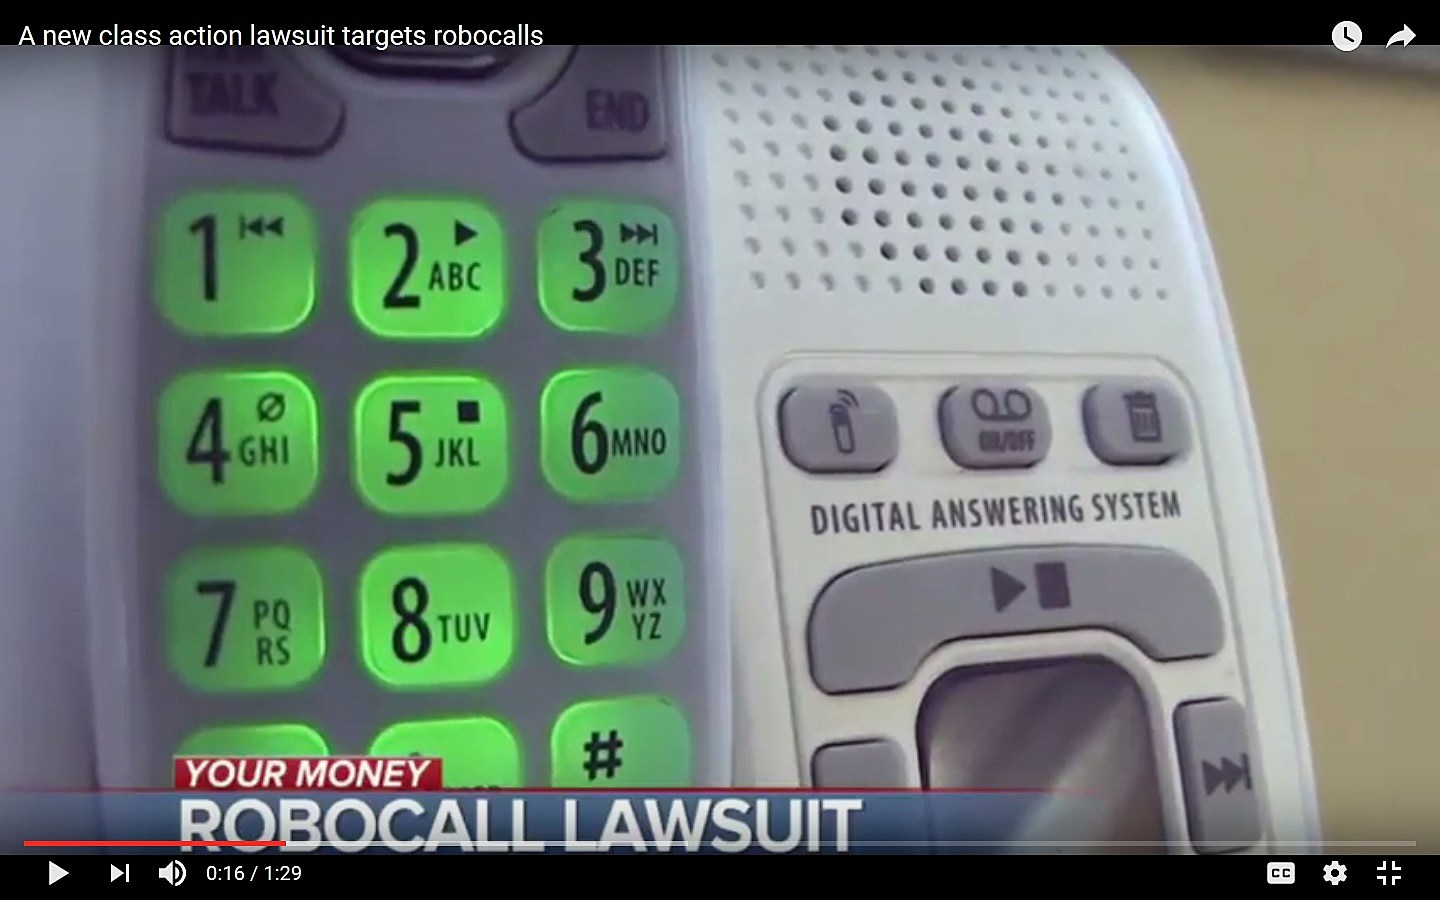 See If Your Phone Number Qualifies for a $900 Robocall Refund